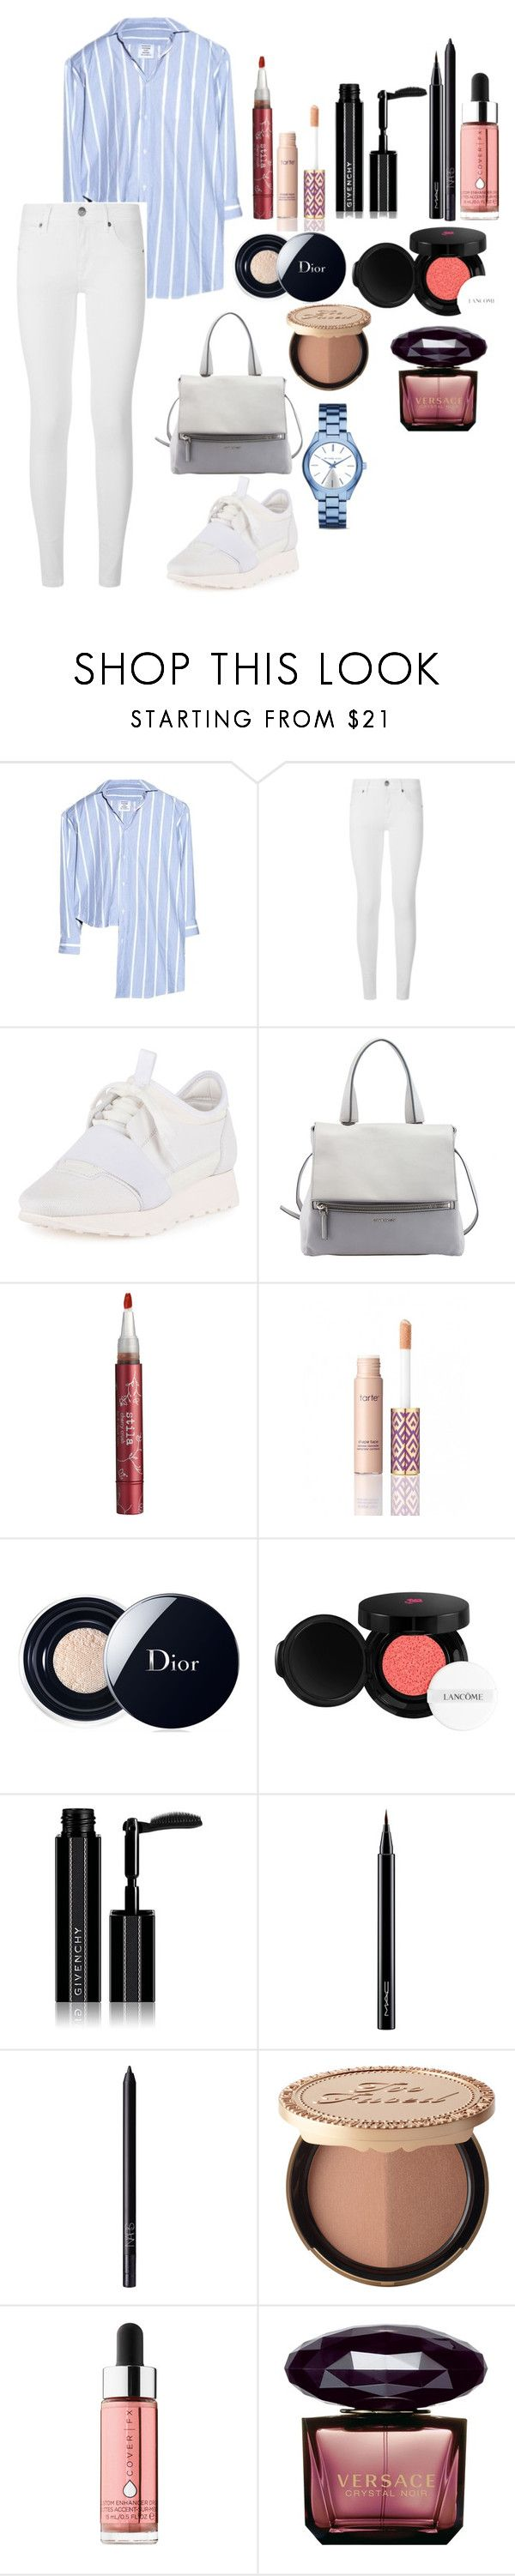 """Untitled #109"" by rahmadita14 on Polyvore featuring Vetements, Burberry, Balenciaga, Givenchy, Stila, tarte, Christian Dior, Lancôme, MAC Cosmetics and NARS Cosmetics"